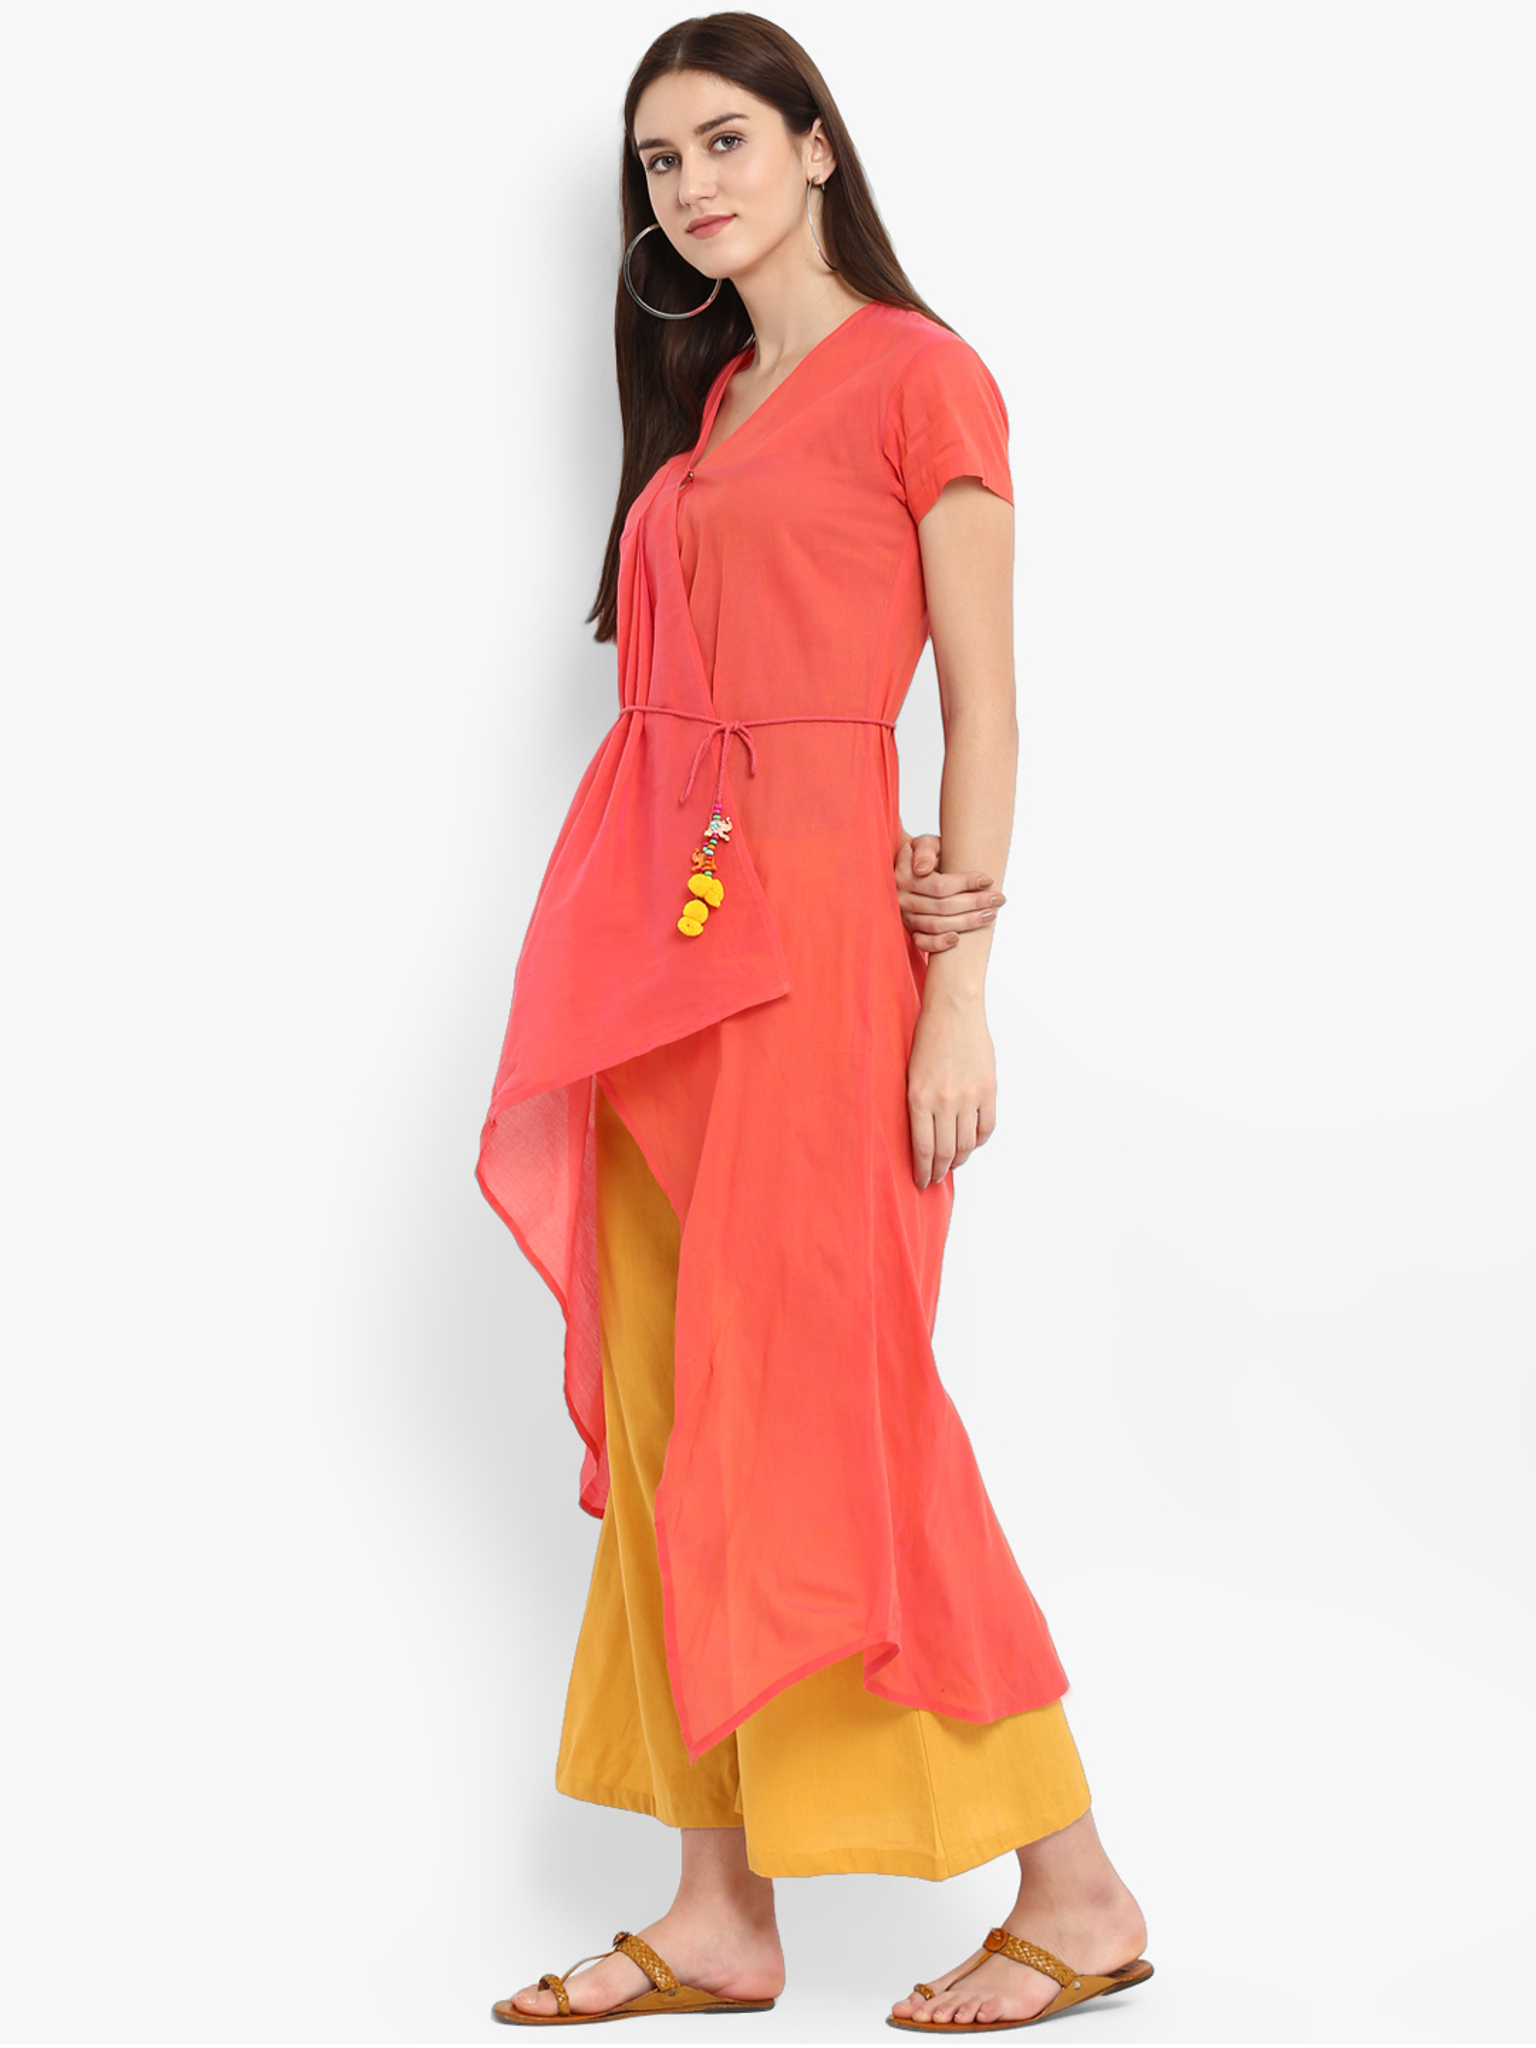 Fifth Avenue Women's TPS170 Overlap Detail Kurti and Palazzo Set - Pink and Yellow